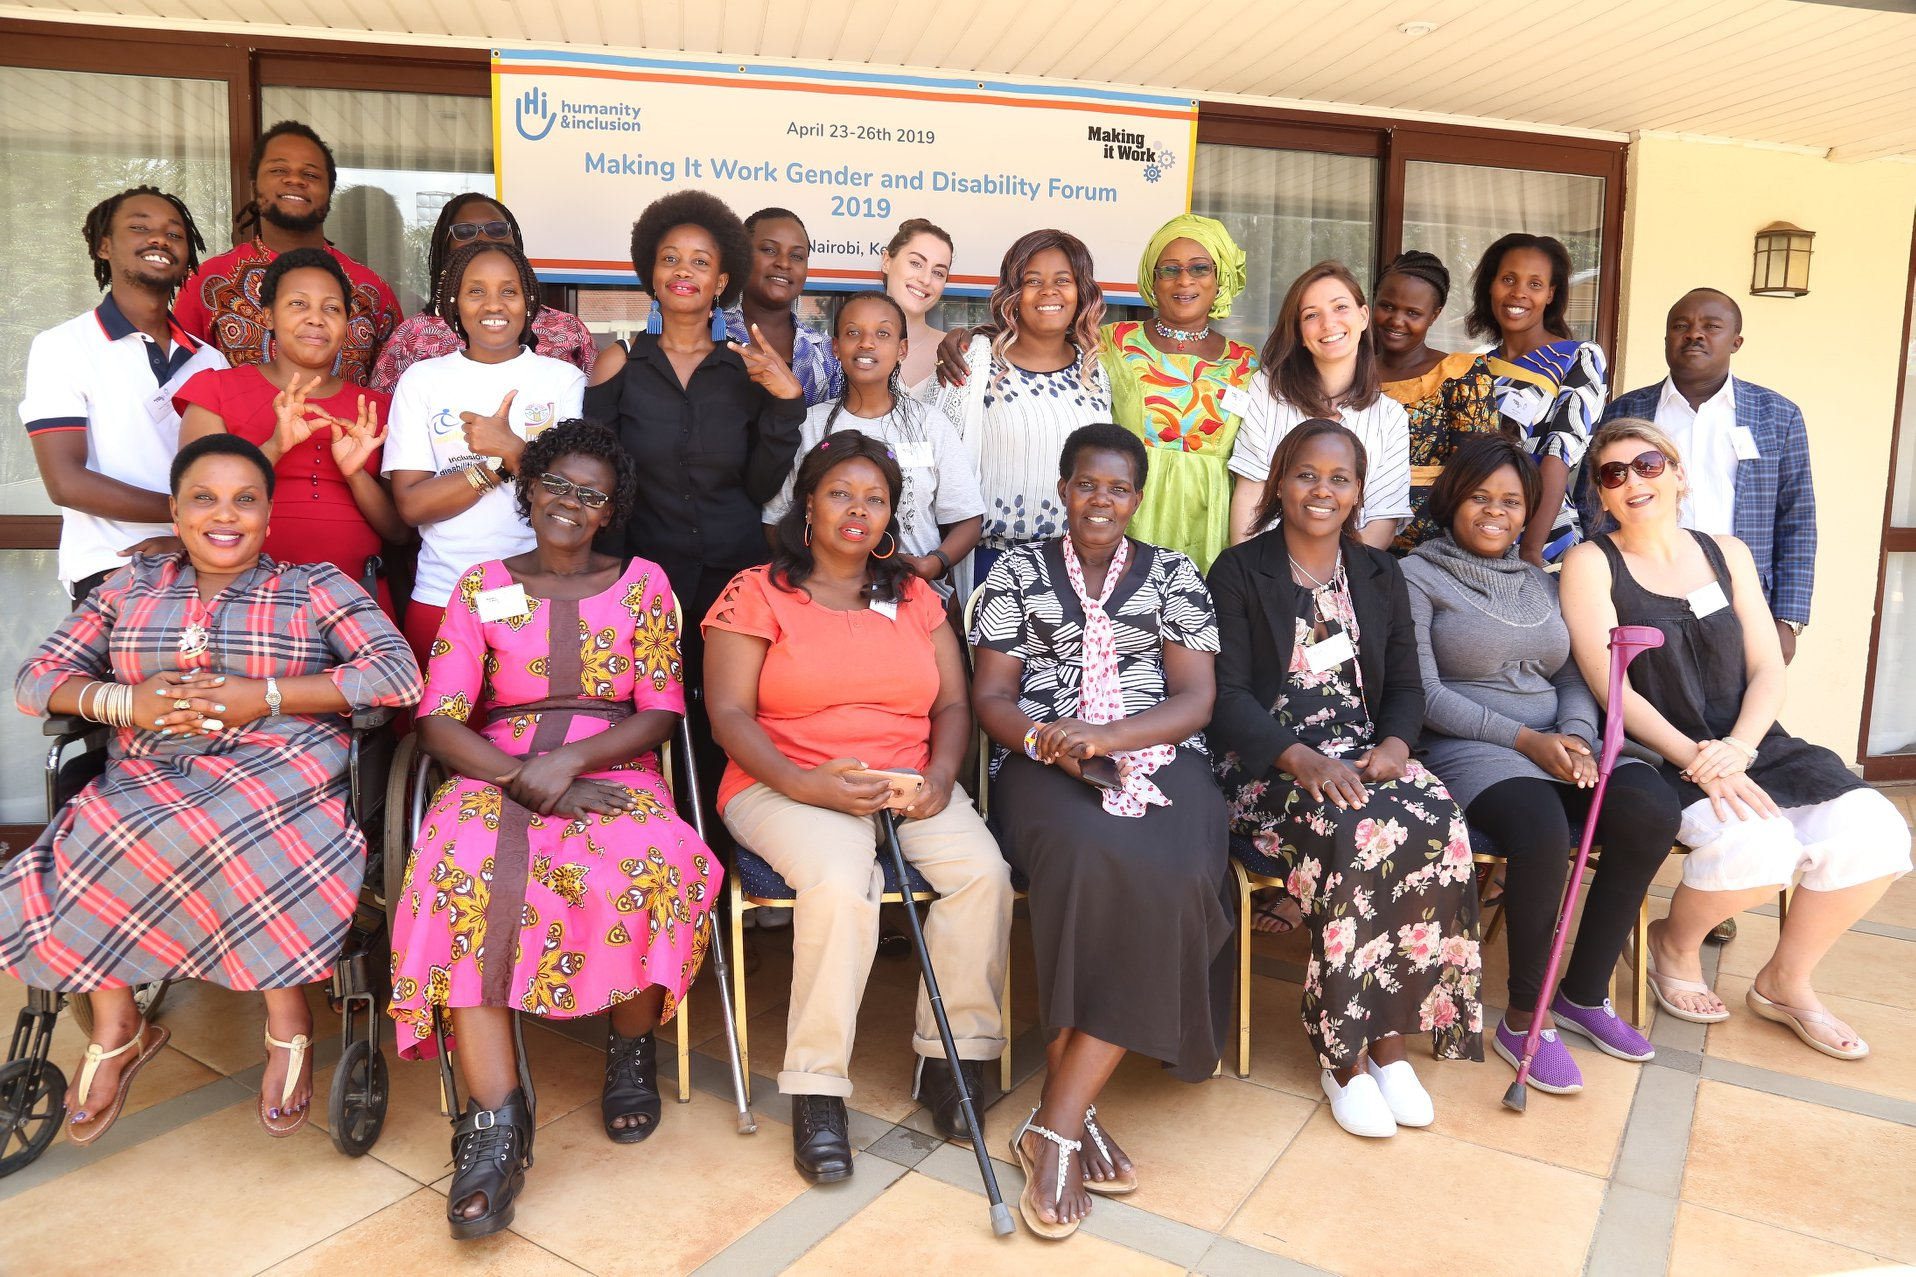 Group photo of the participants of the third making it work gender and disability forum in Nairobi 2019